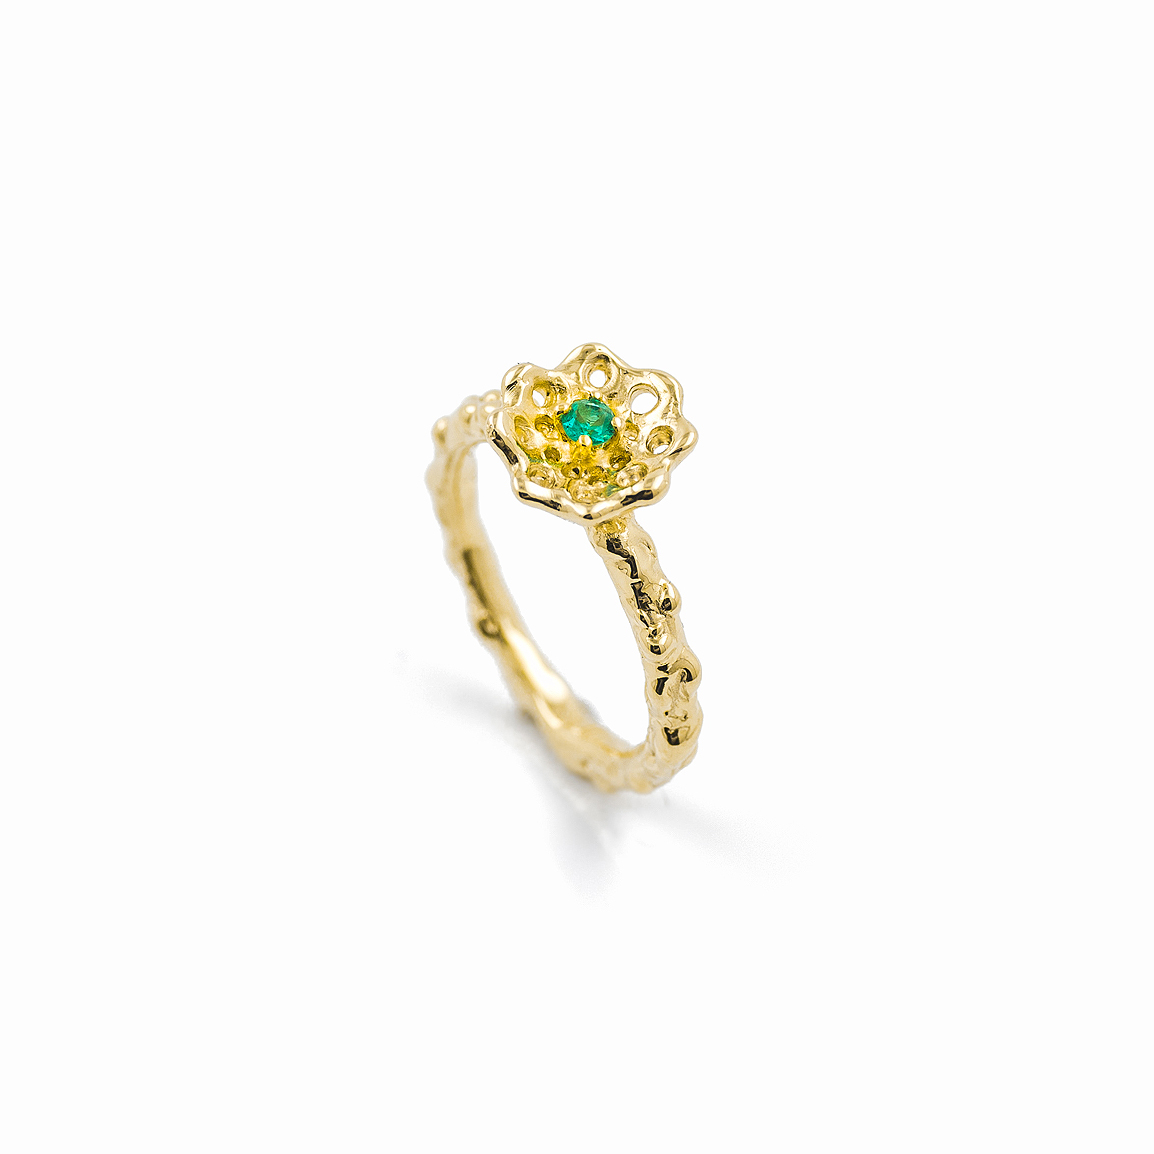 Cusp Engagement ring Band | Yellow gold, emerald.